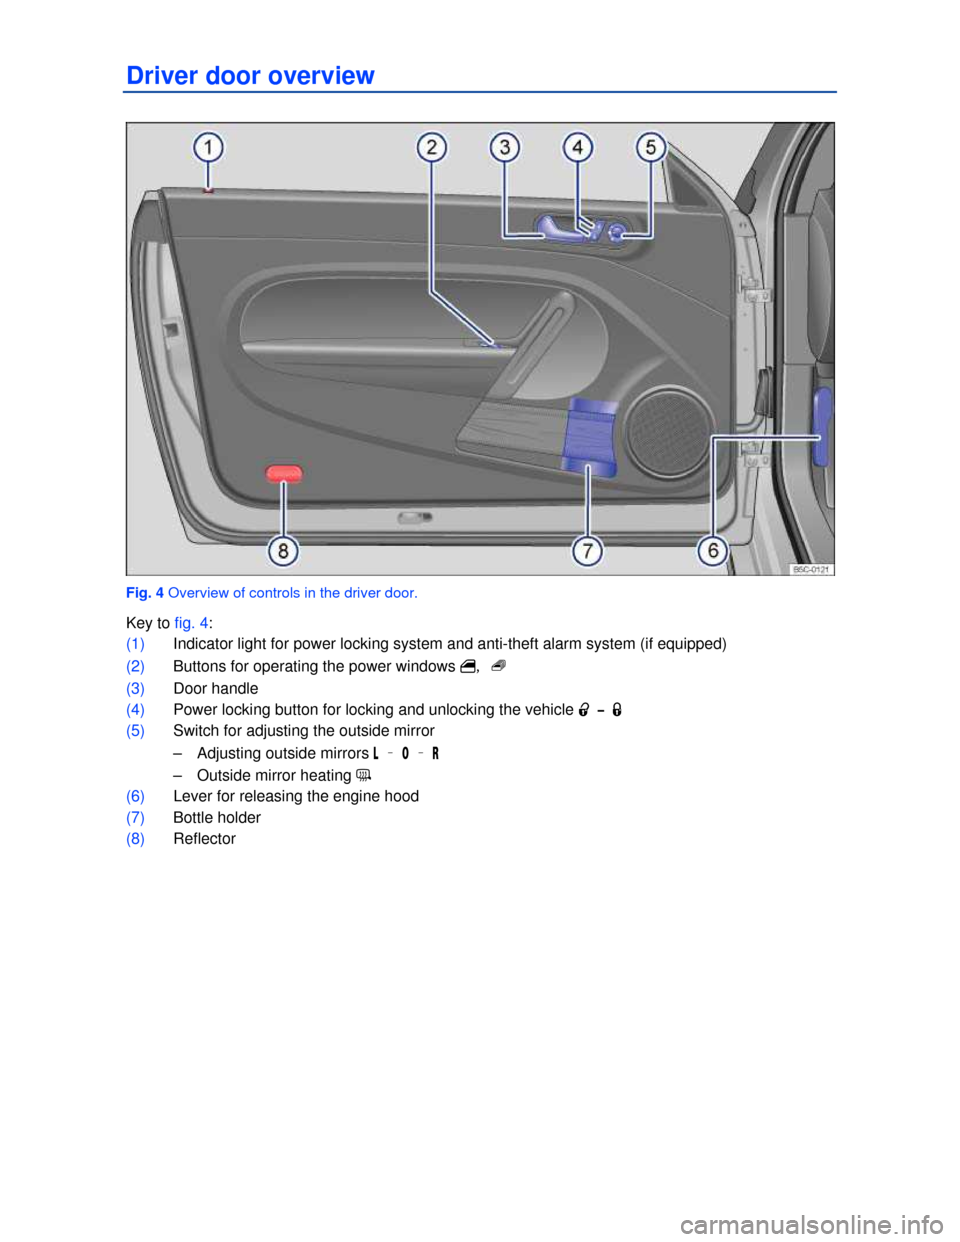 VOLKSWAGEN BEETLE CONVERTIBLE 2013 3.G Owners Manual   Driver door overview    Fig. 4 Overview of controls in the driver door.  Key to fig. 4:  (1) Indicator light for power locking system and anti-theft alarm system (if equipped)   (2) Buttons for oper